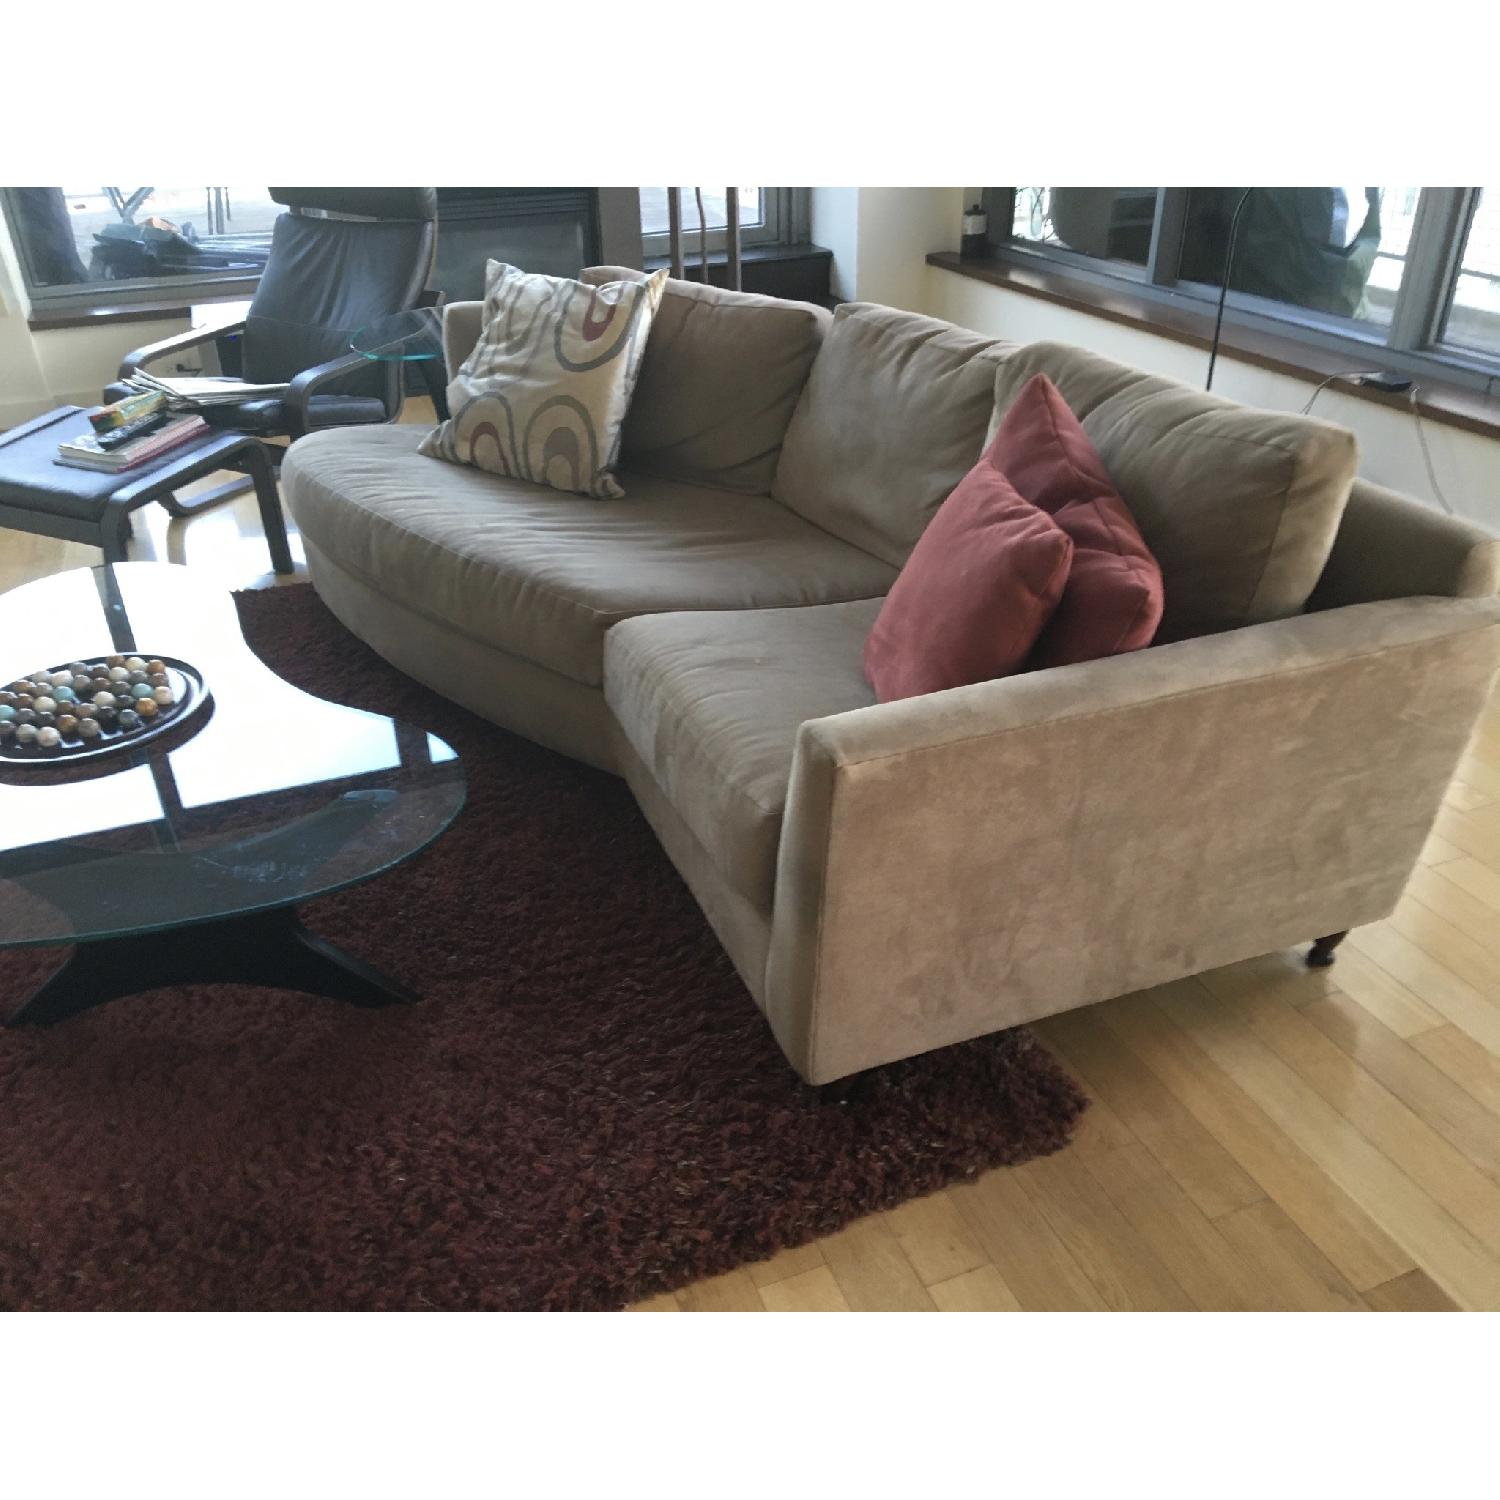 Grey Suede Couch - image-3